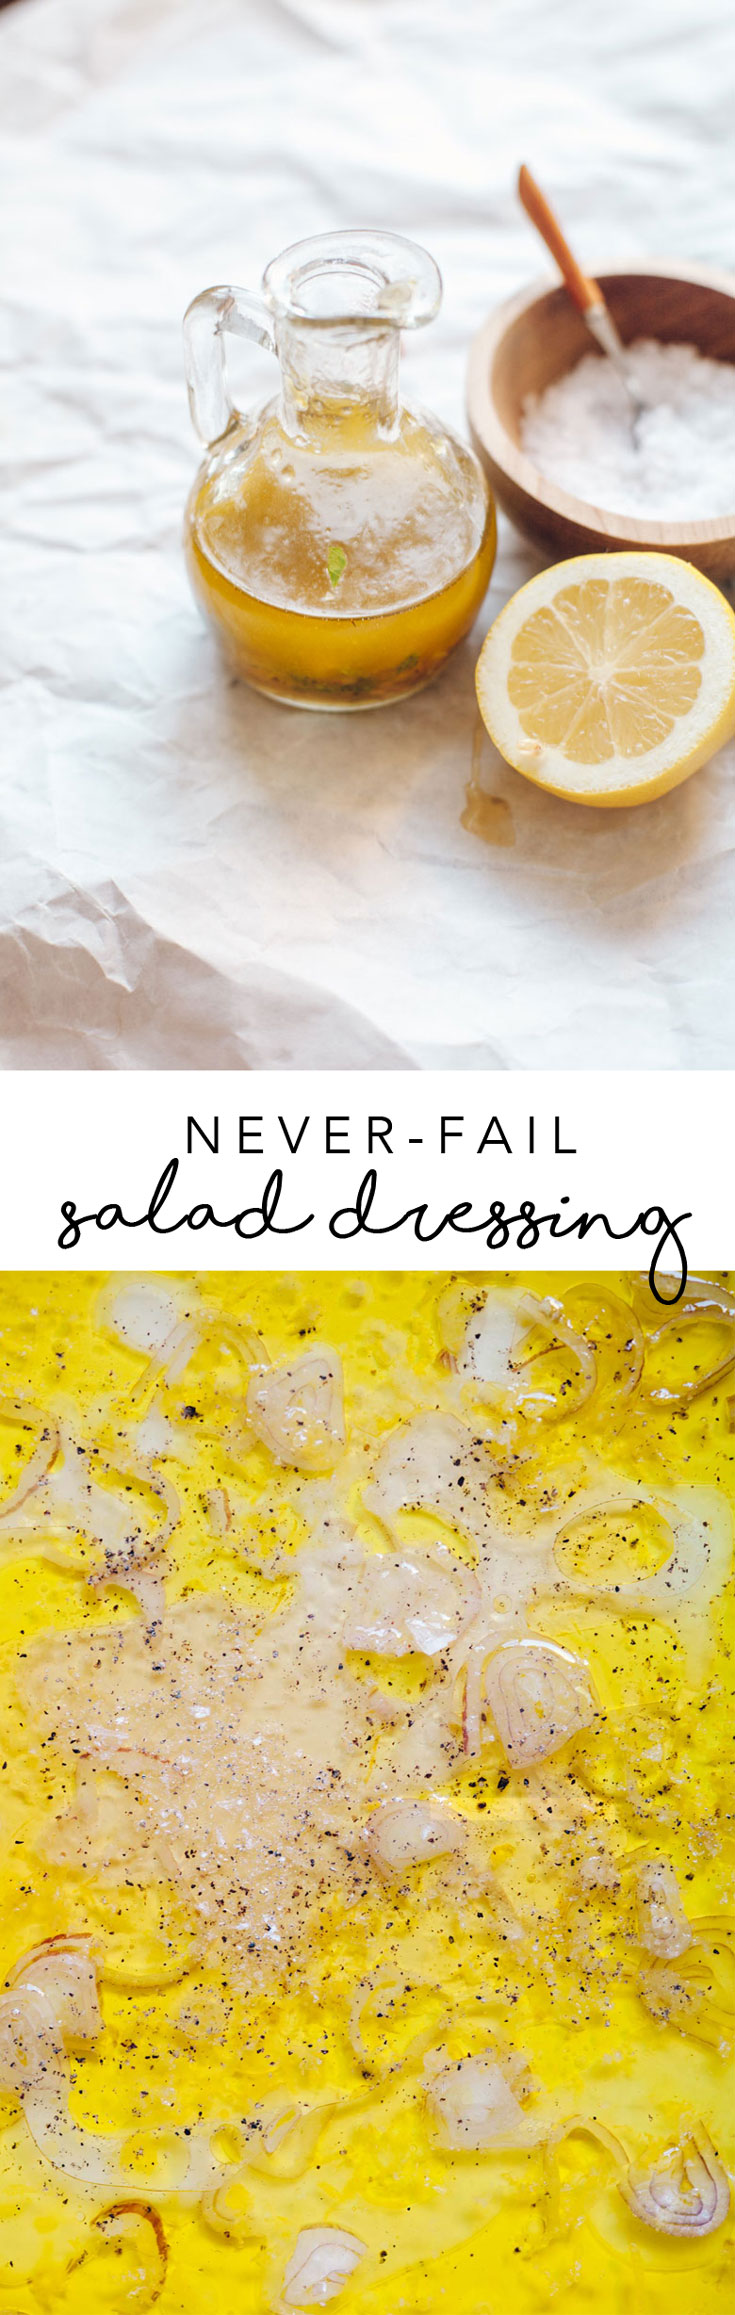 This Never-Fail Salad Dressing is made with all the items you already have at home, like olive oil, lemon, honey, salt, and shallots. It's easily customizable and delicious on EVERY salad. #salad #dressing #healthy | Brewing Happiness